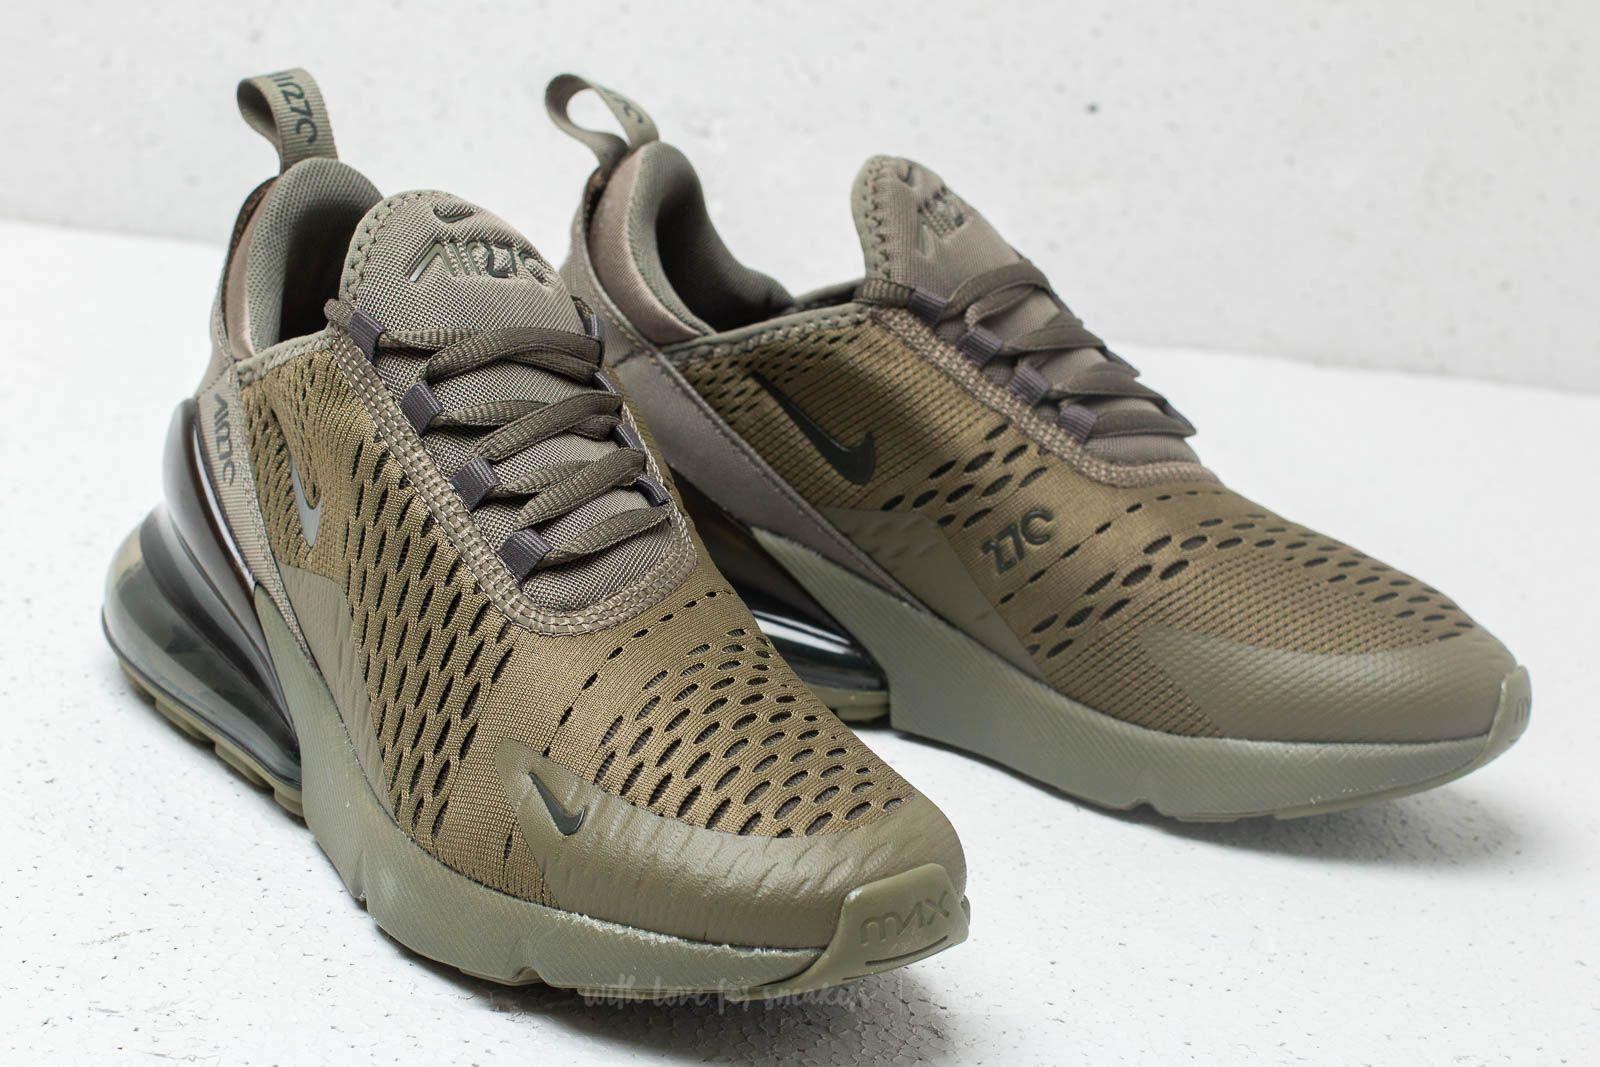 sale retailer 613e8 95483 Nike Air Max 270 (gs) Medium Olive  Newsprint in Green - Lyst